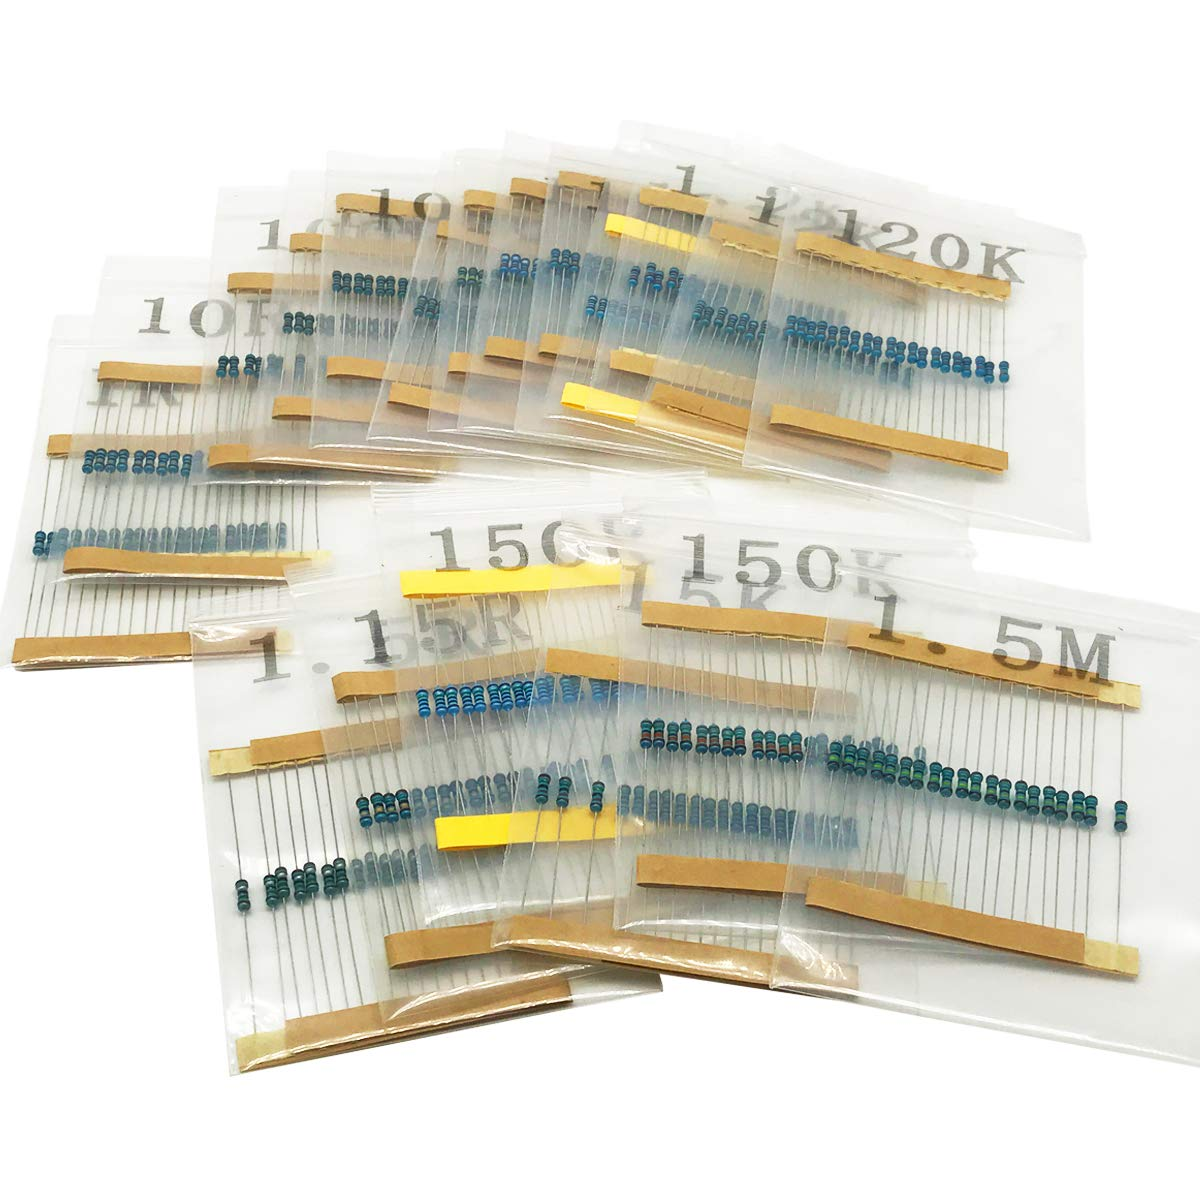 2600PCS 130 Values 1/% Resistor Kit 1 Ohm 1//4W Metal Film Resistors Assortment for DIY Electronic Projects and Experiments IRHAPSODY 3M Ohm